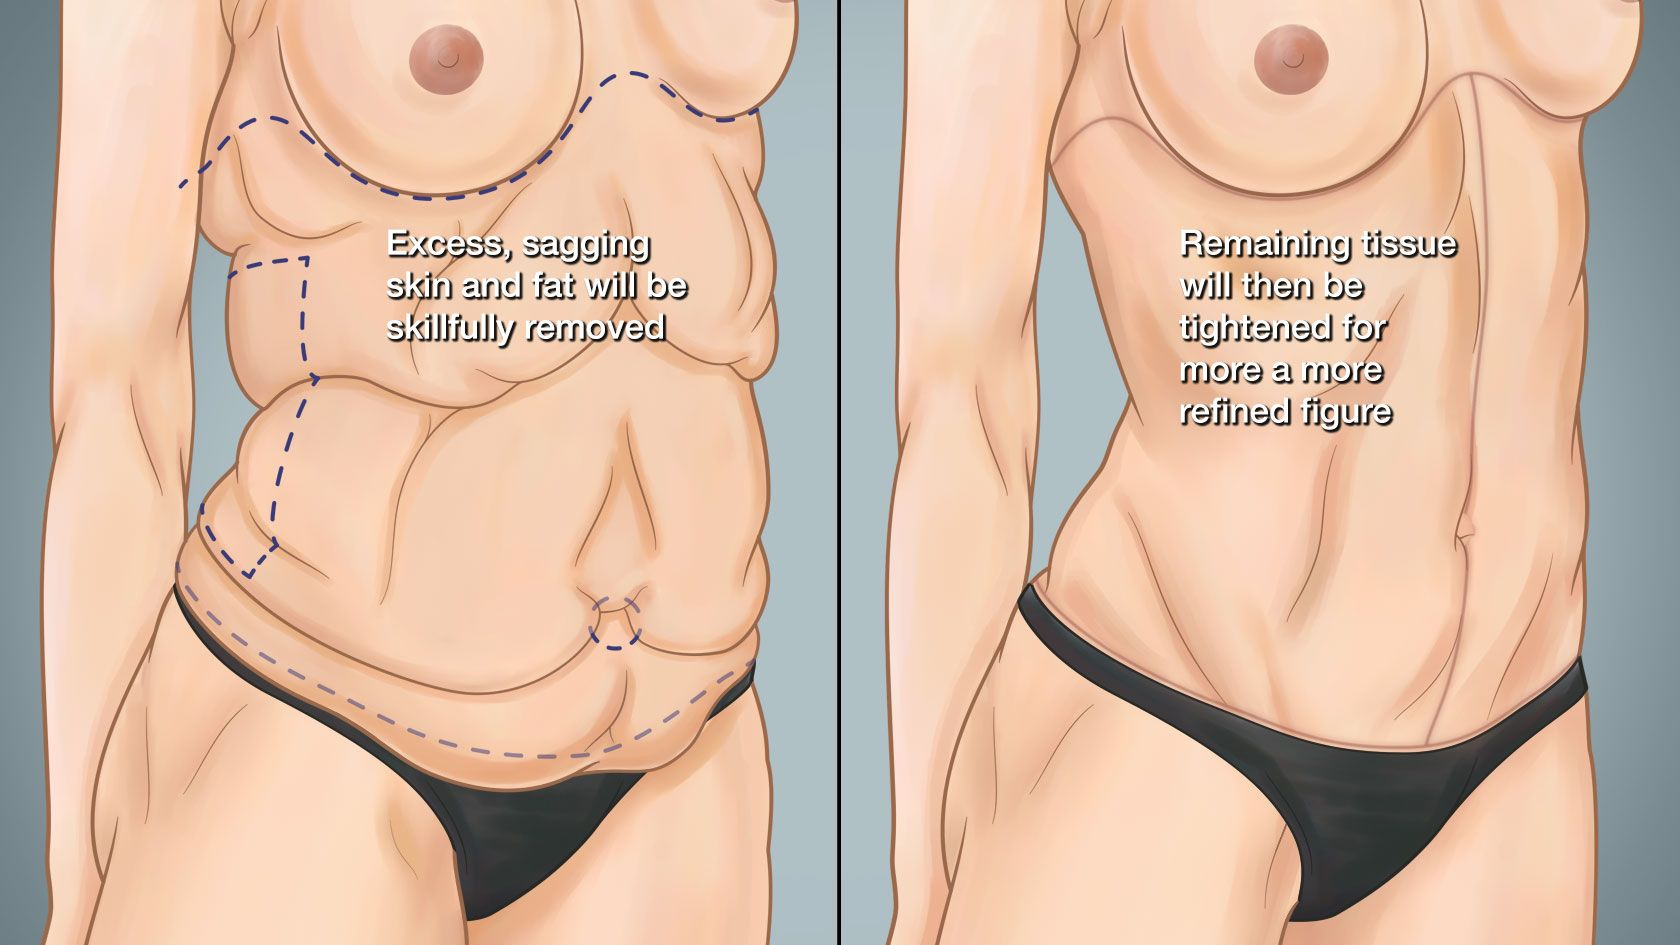 Illustration showing the potential of skin tightening after weight loss